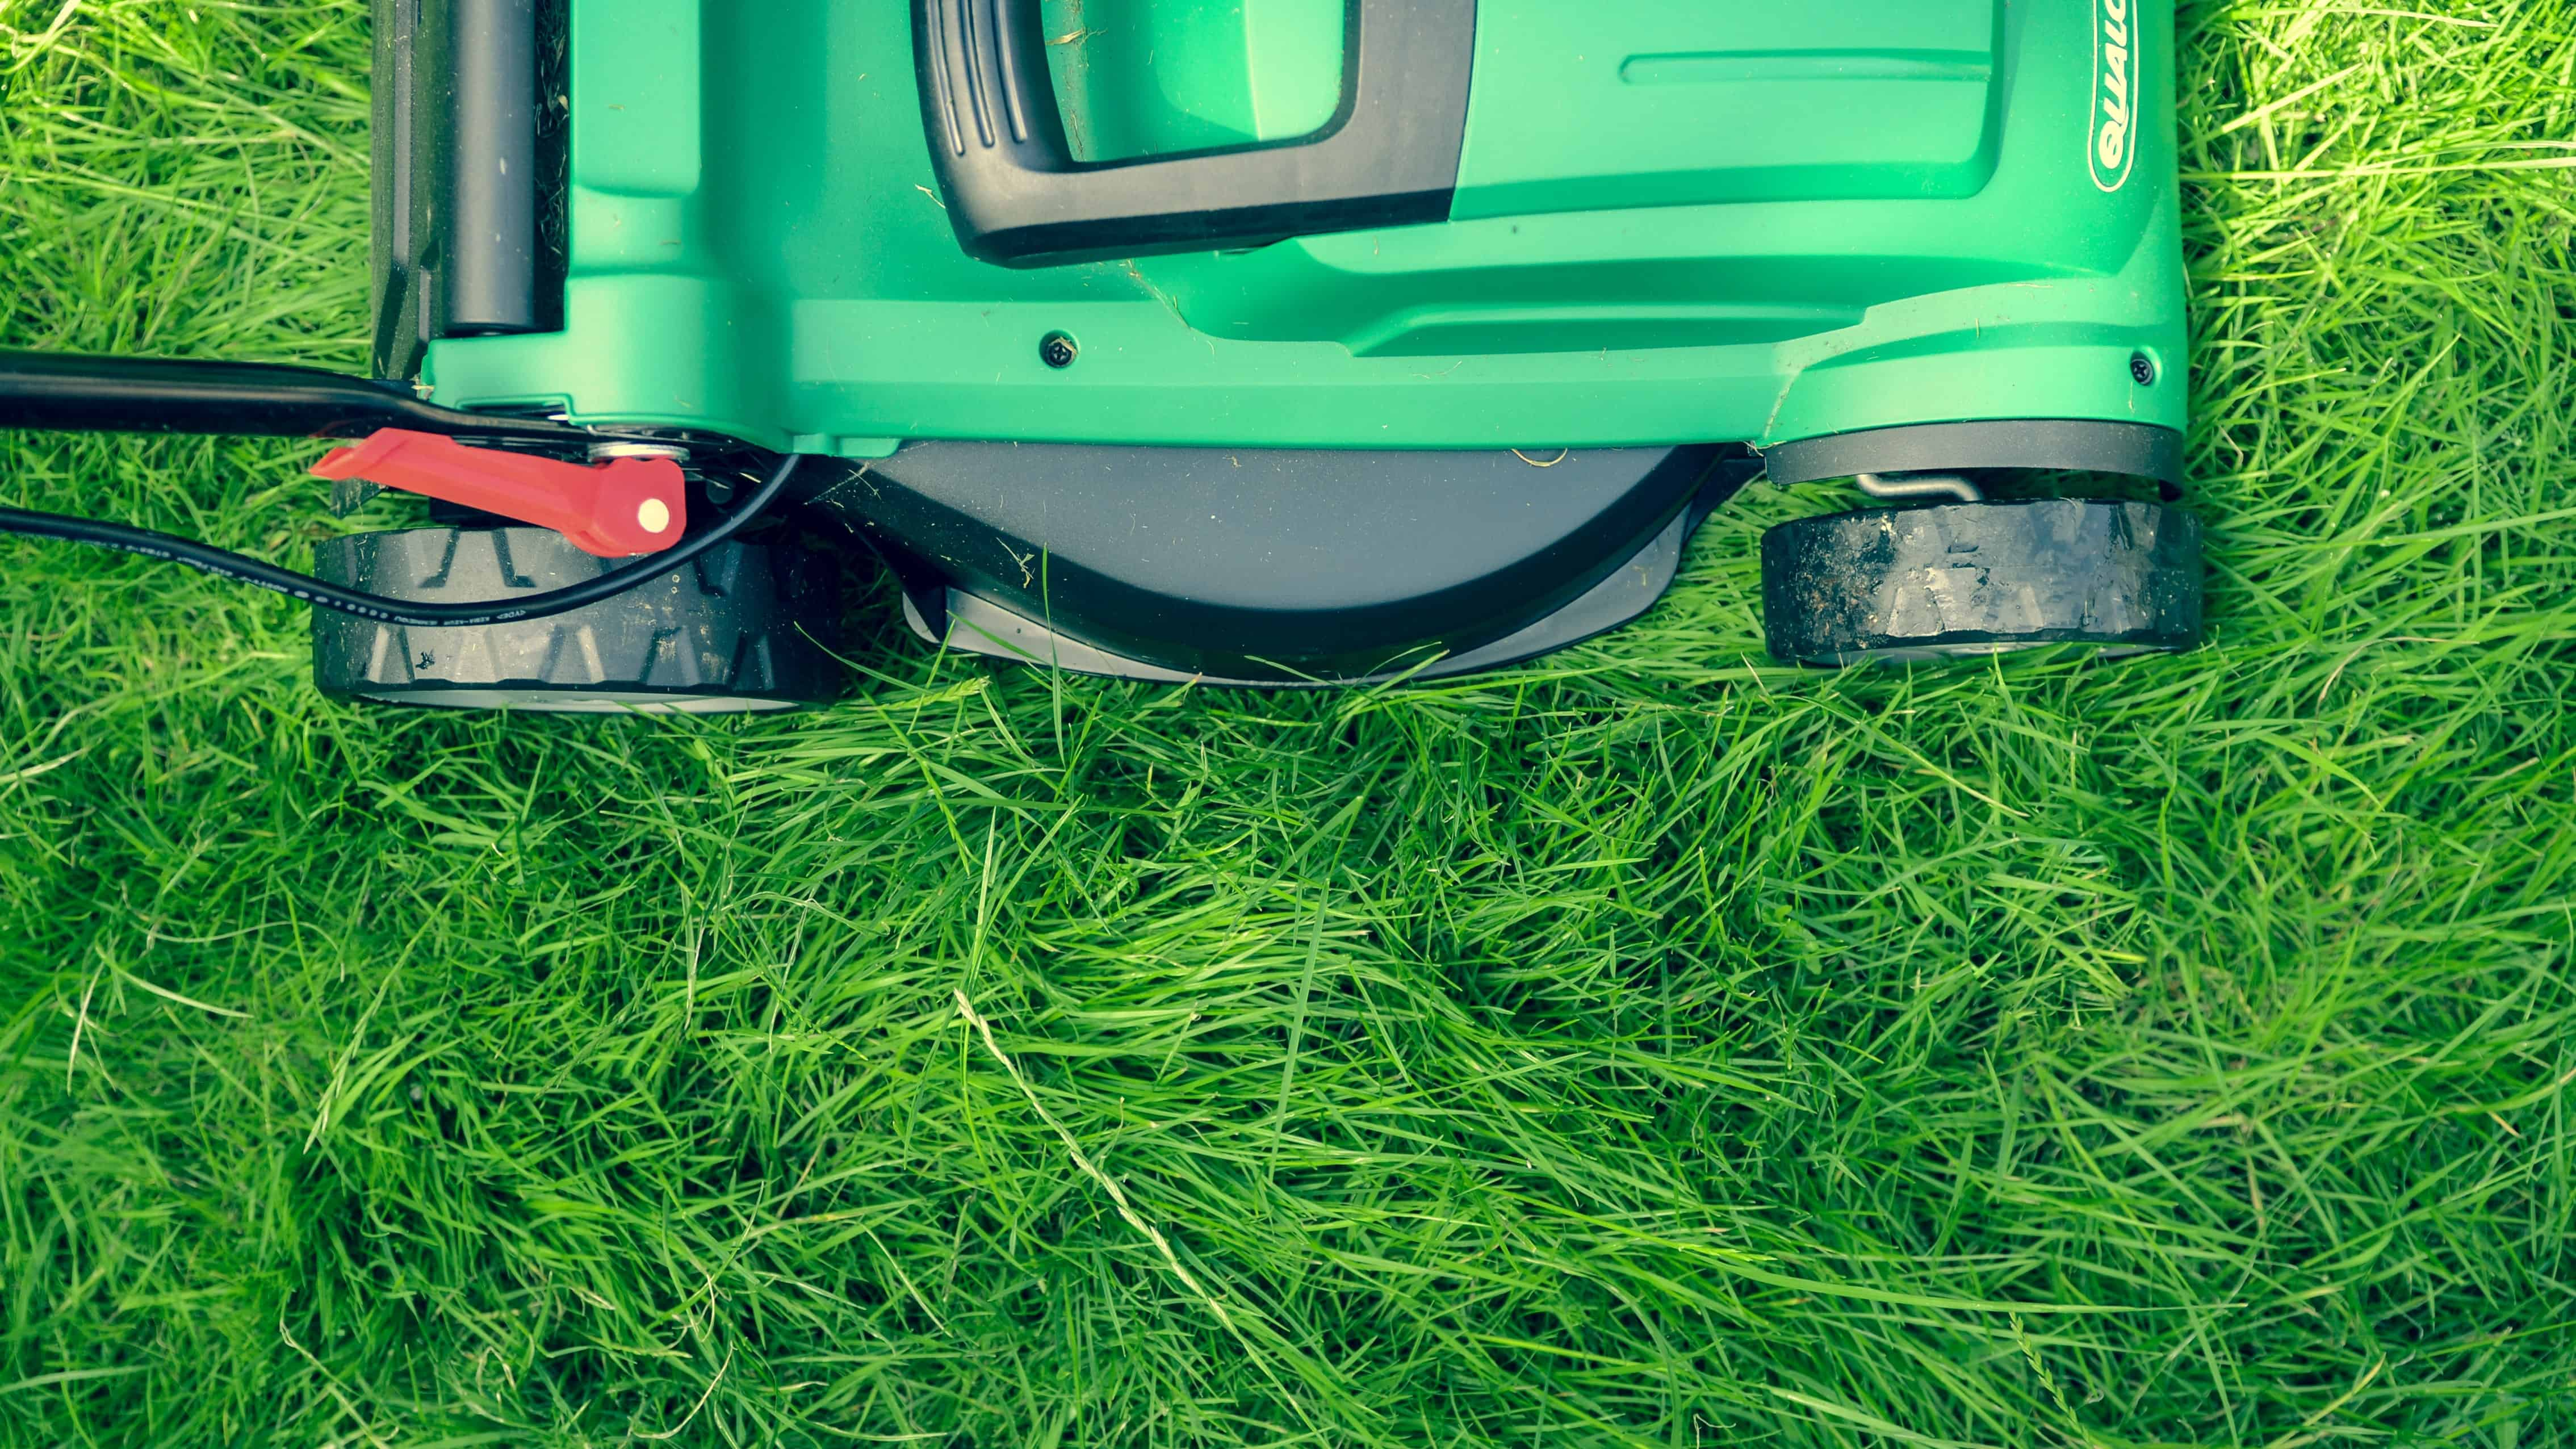 aerial view of a lawnmower on grass